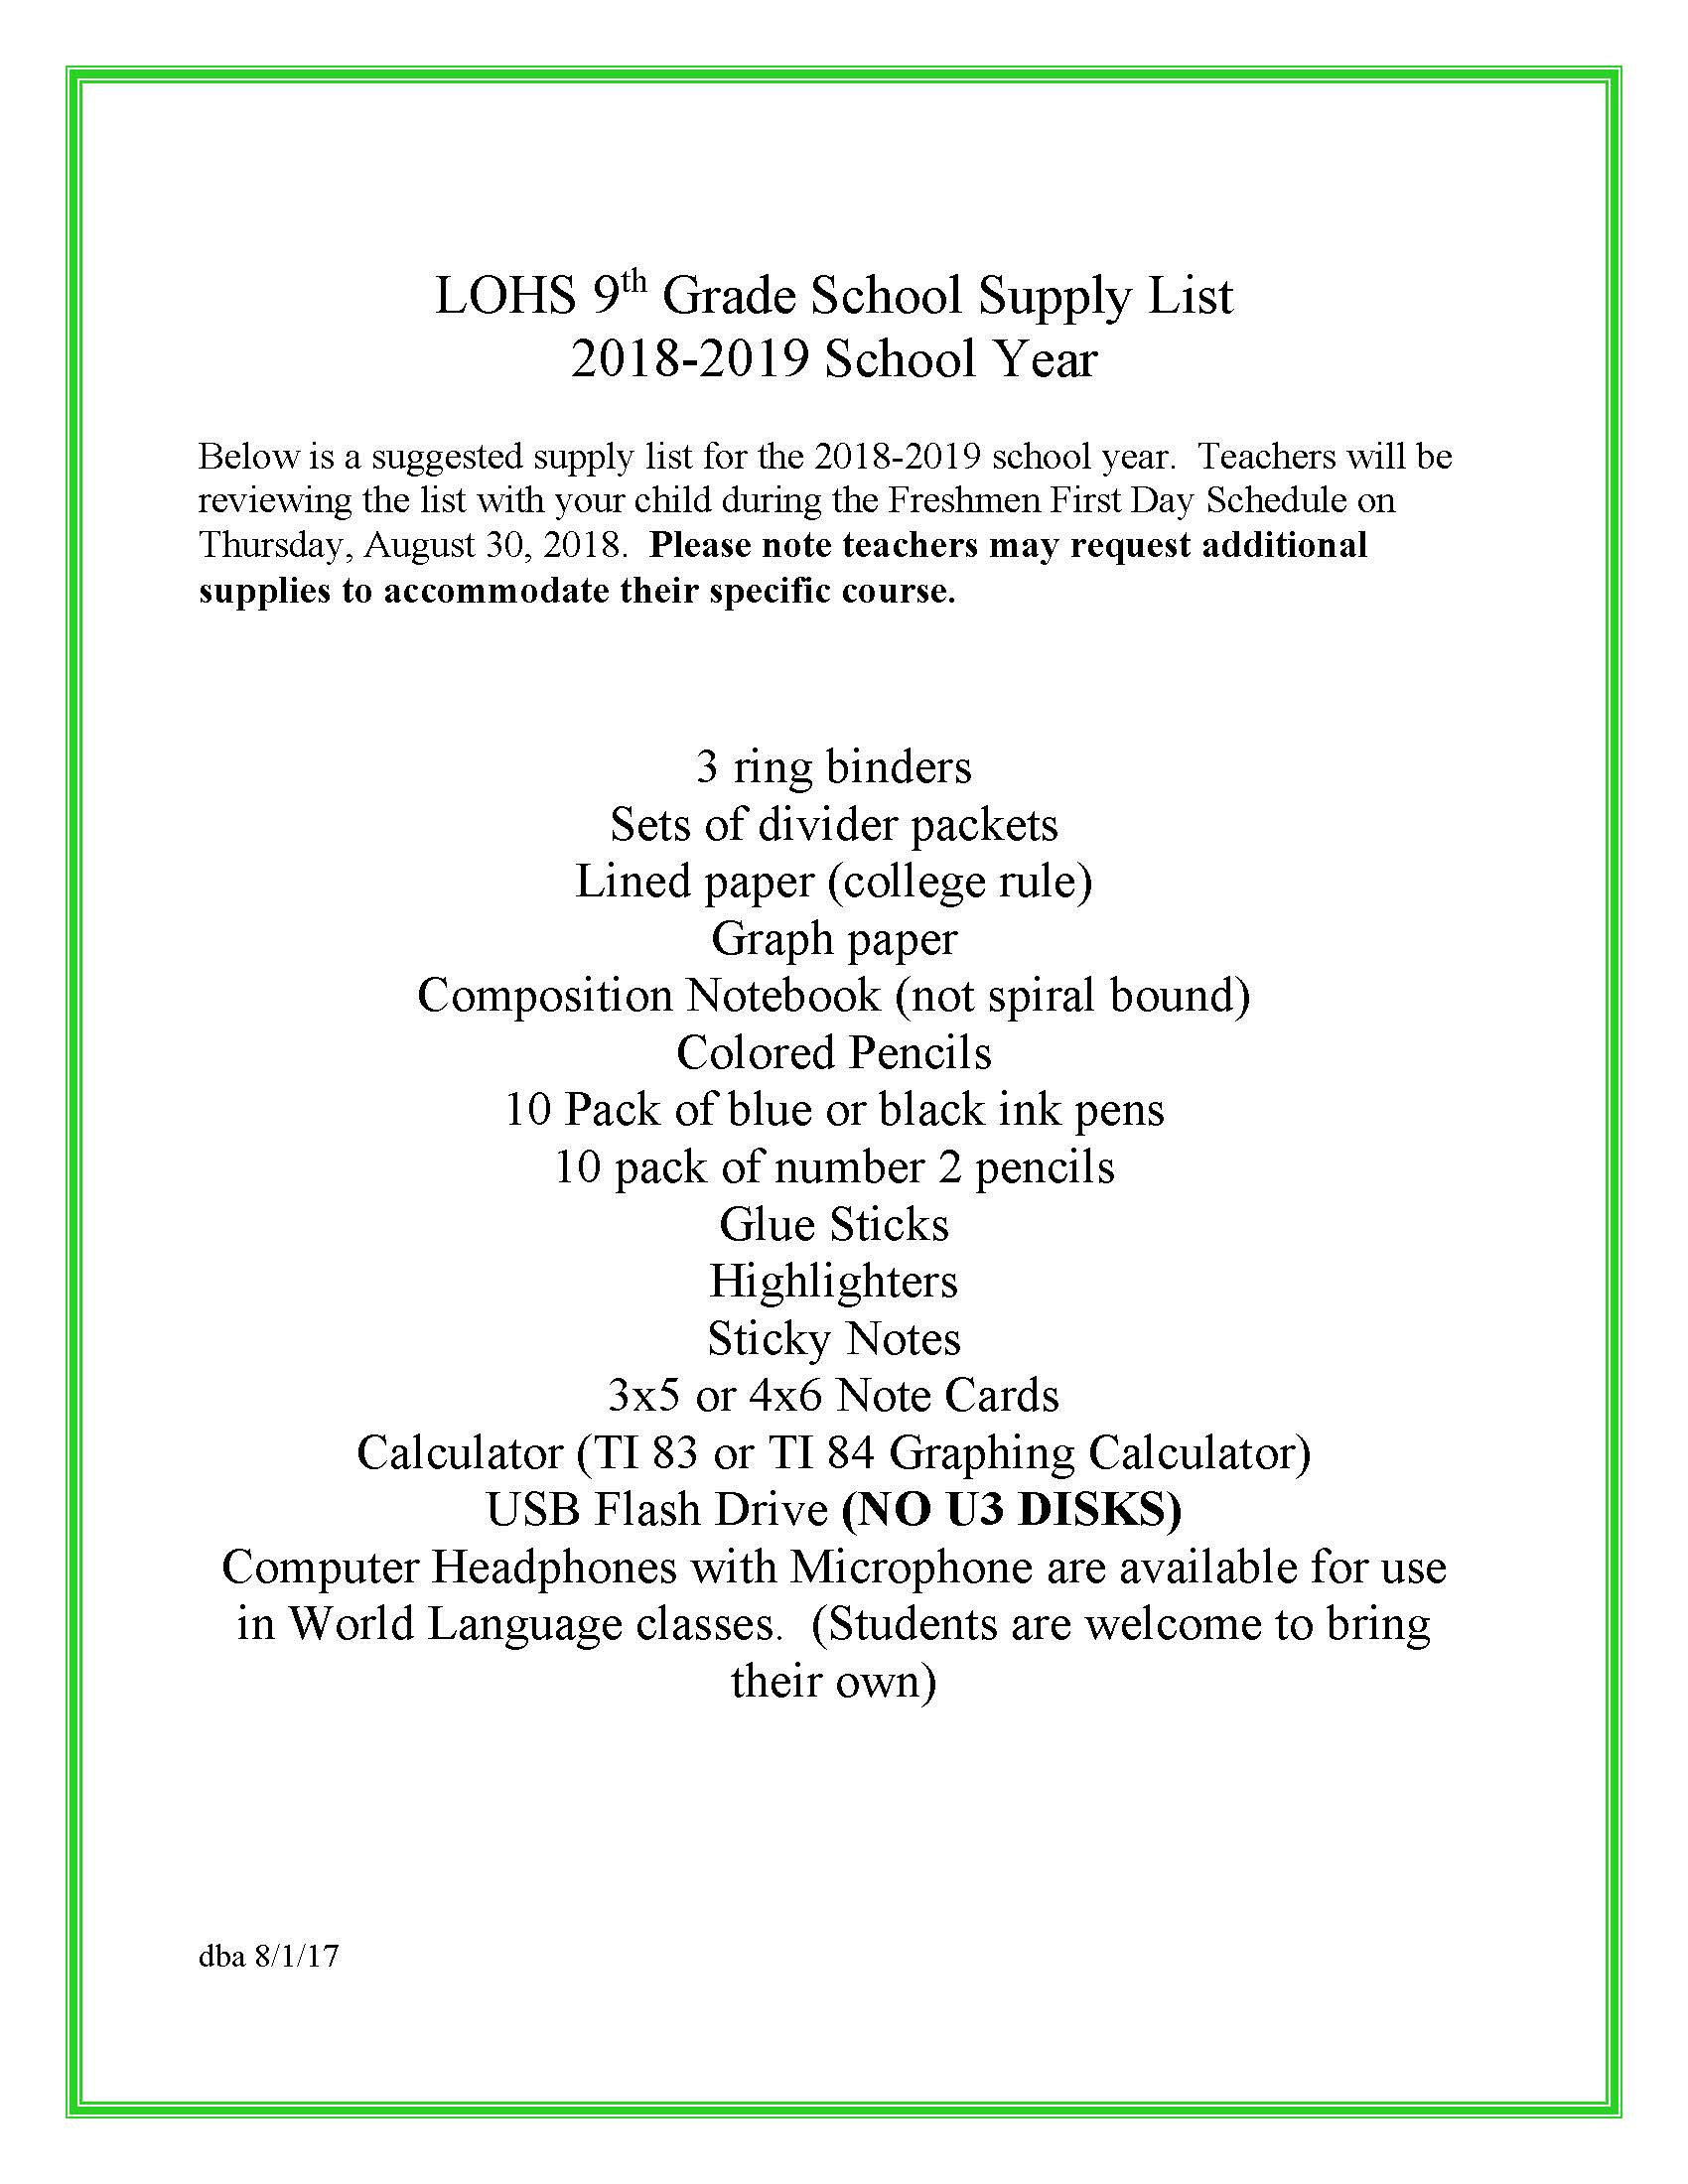 9th Grade Suggested Supply List